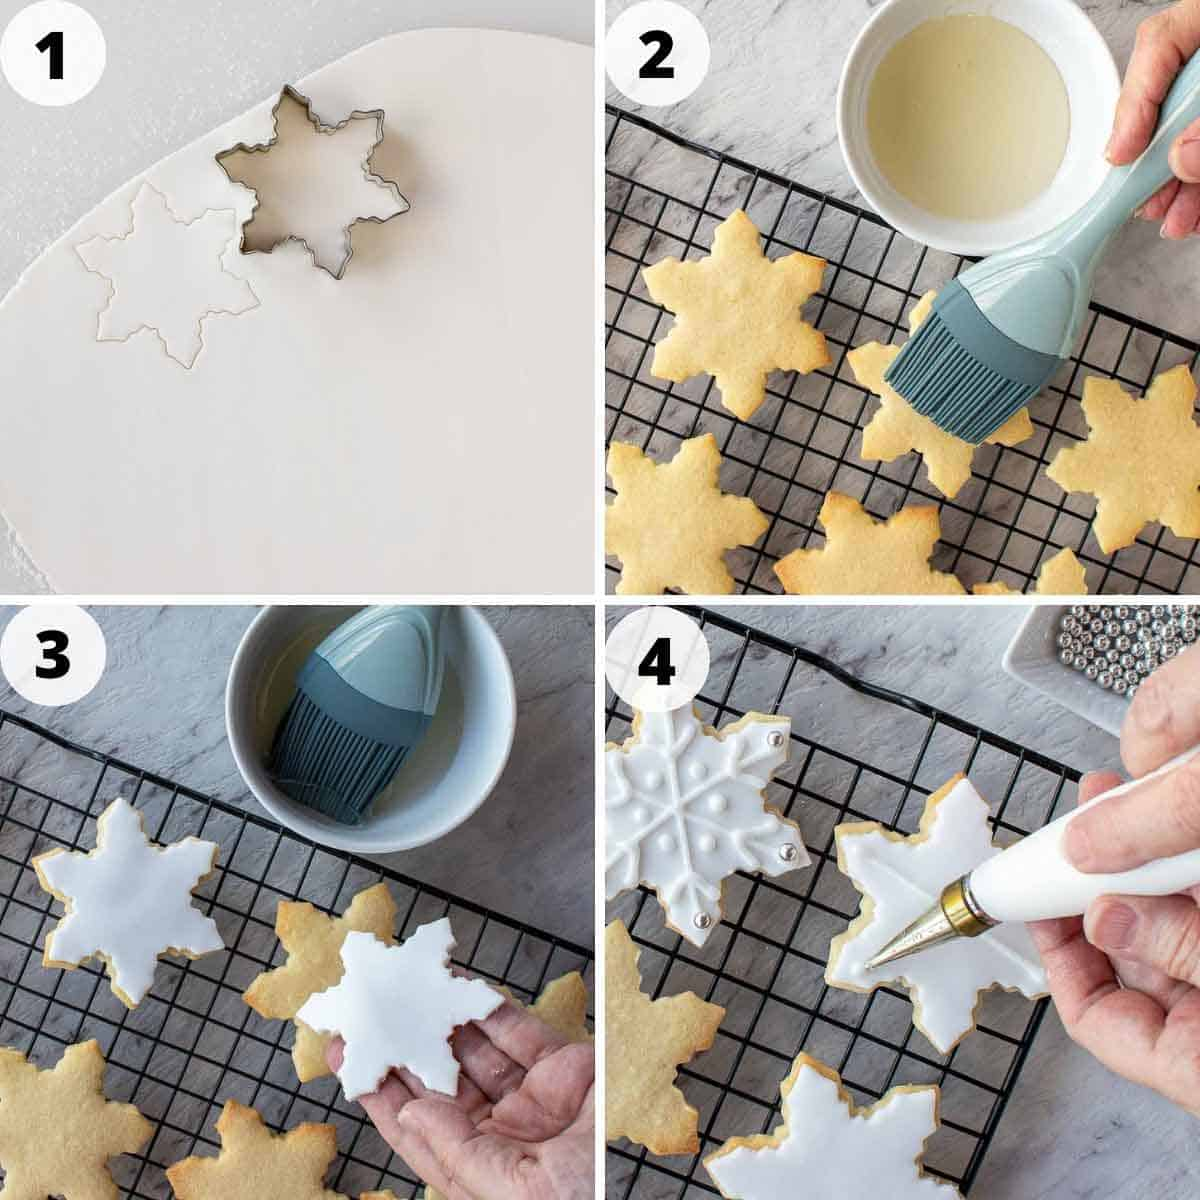 four-step photo collage showing how to decorate sugar cookies.